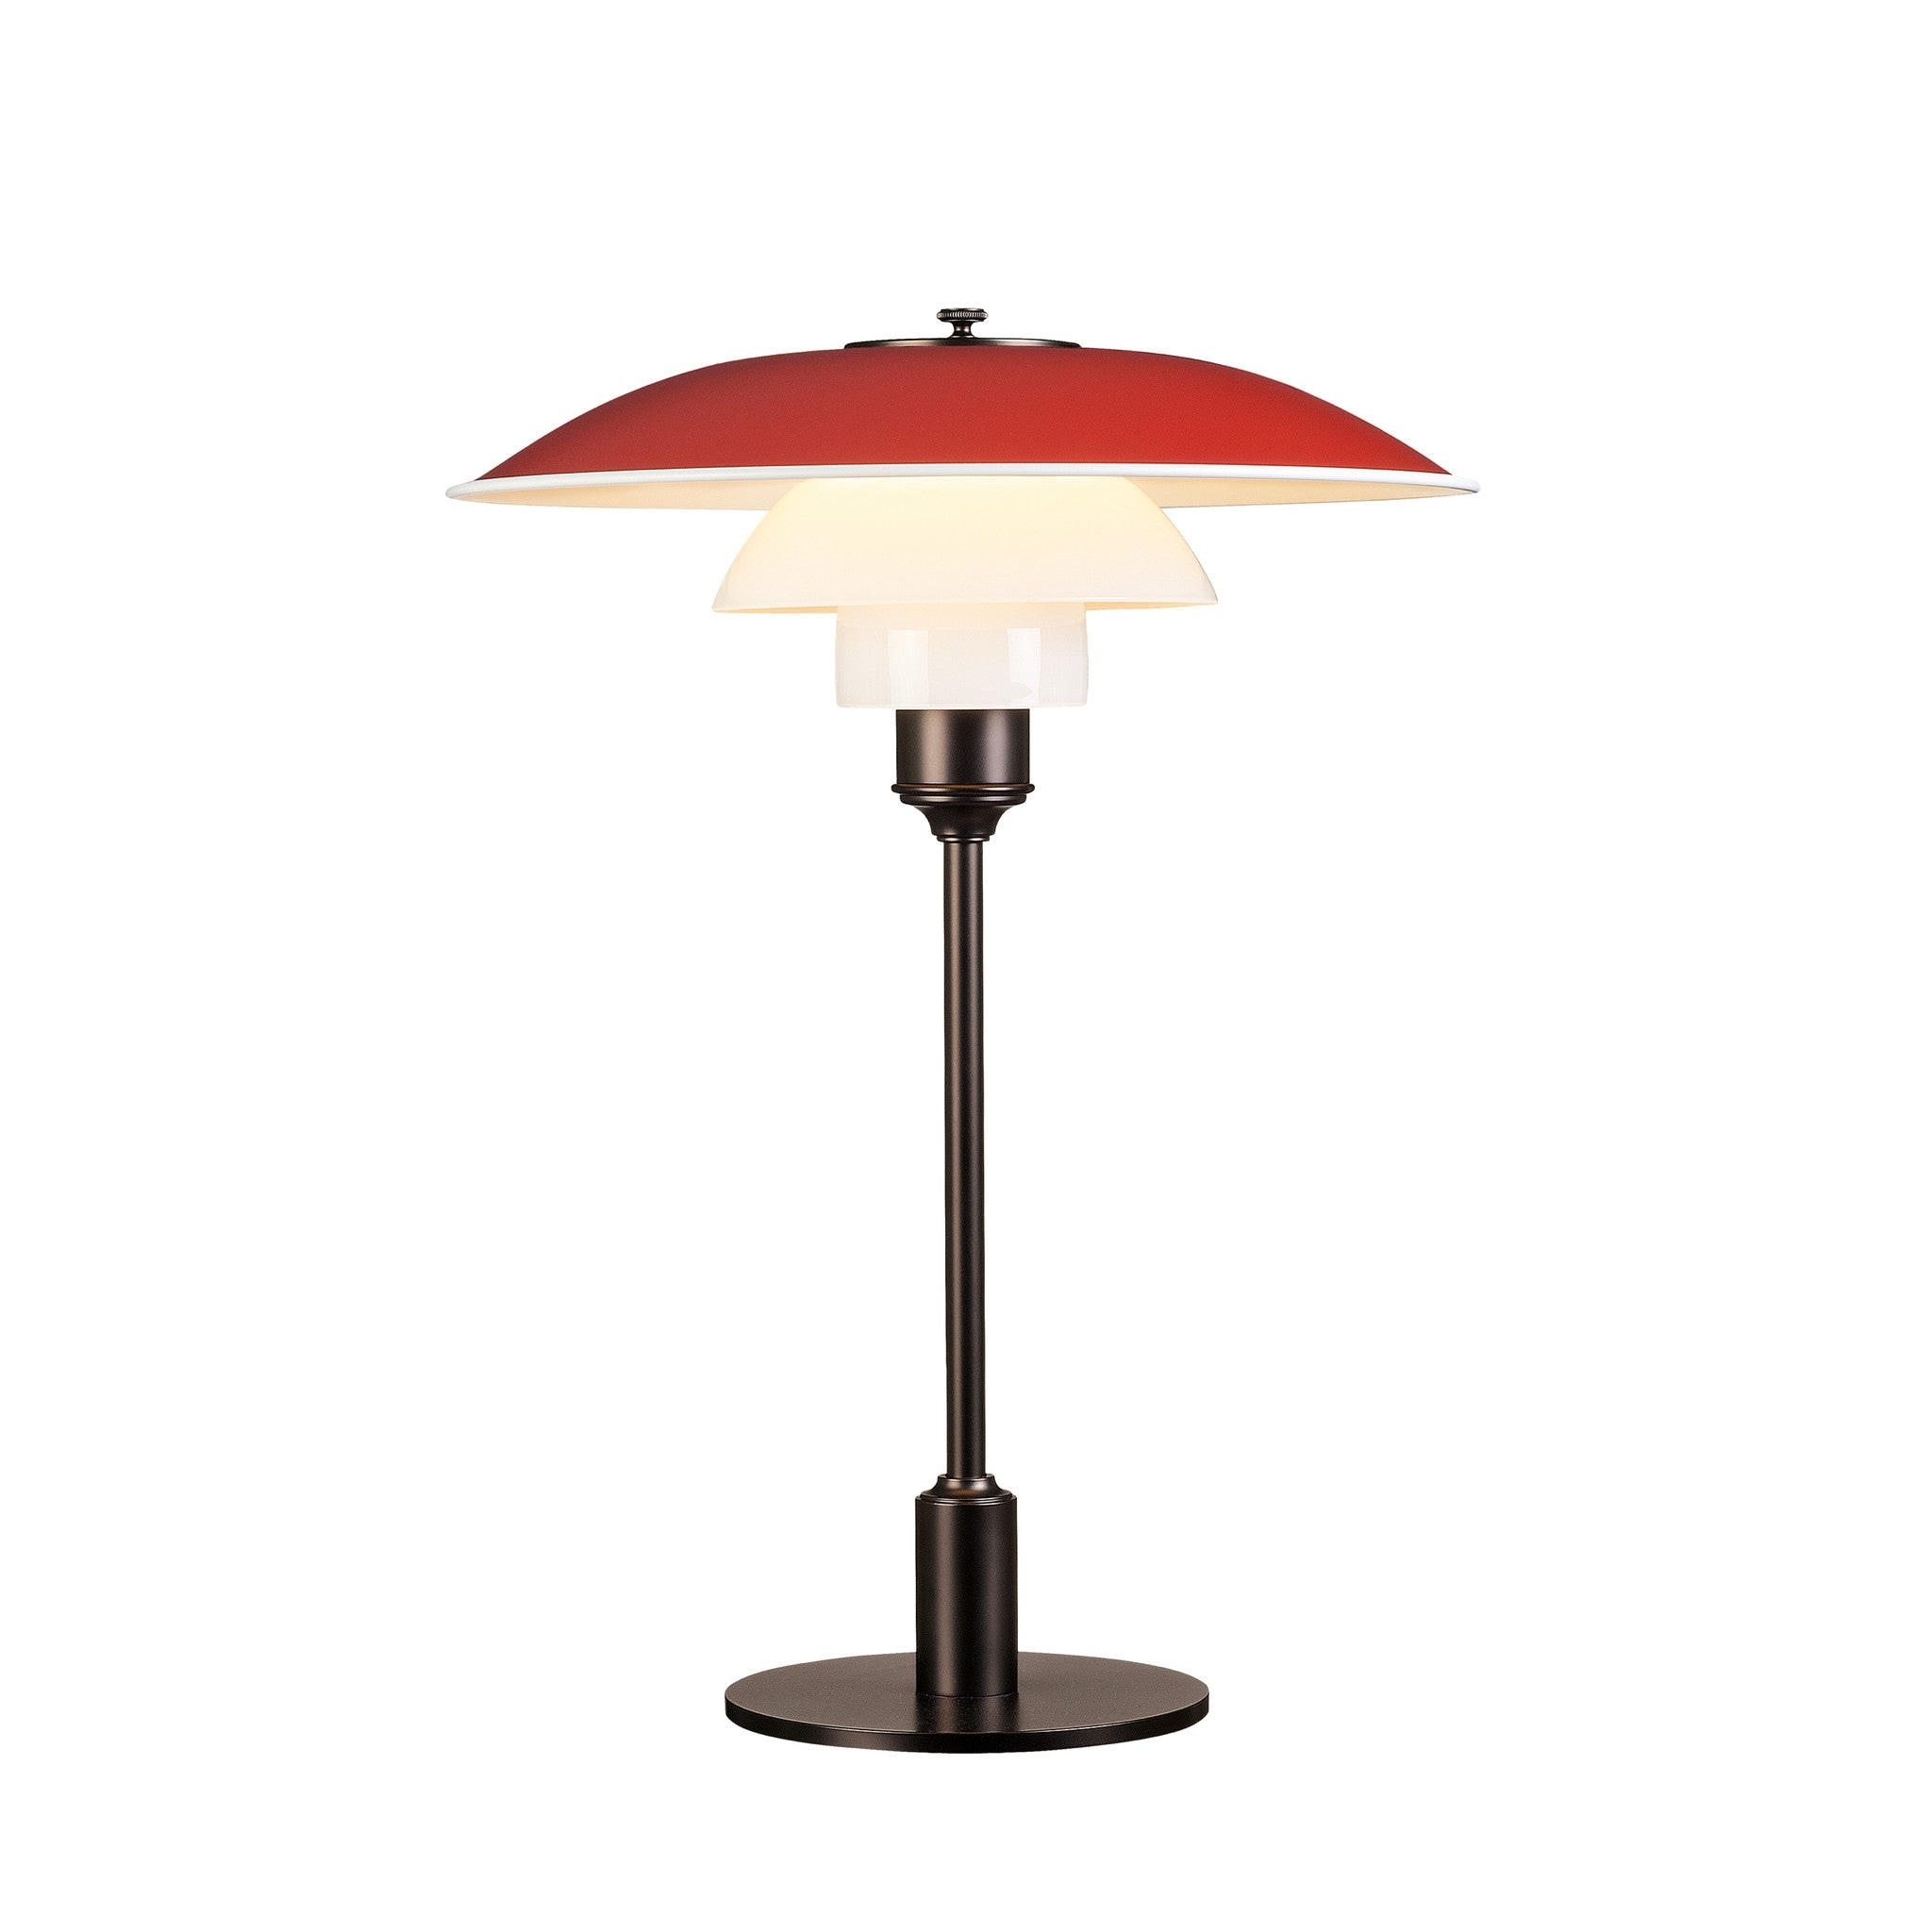 PH 3 1/2 2 1/2 Table Lamp by Louis Poulsen